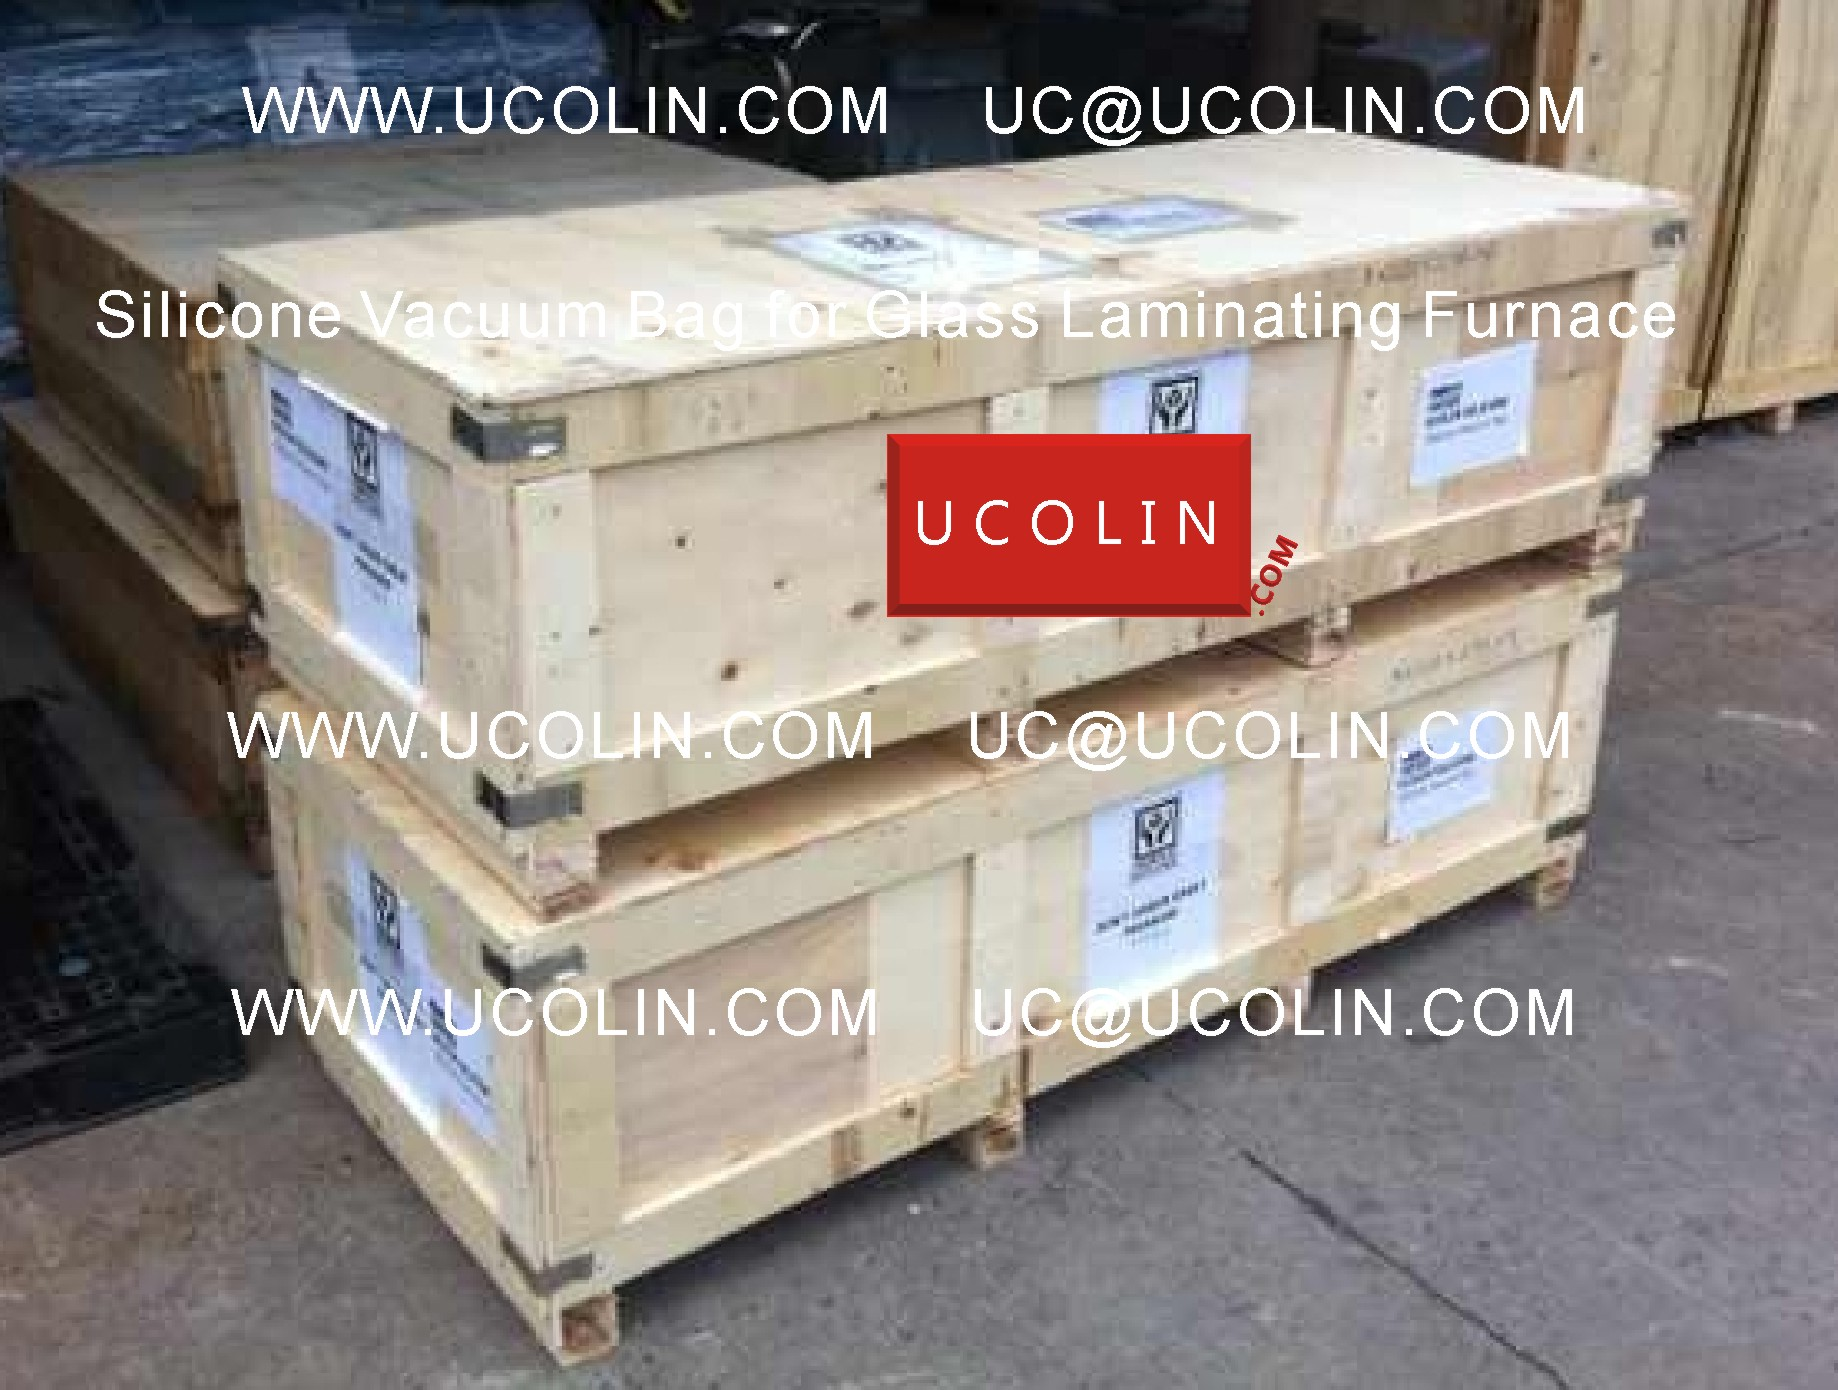 07 Producing of Silicone Vacuum Bag for Glass Laminating Furnace